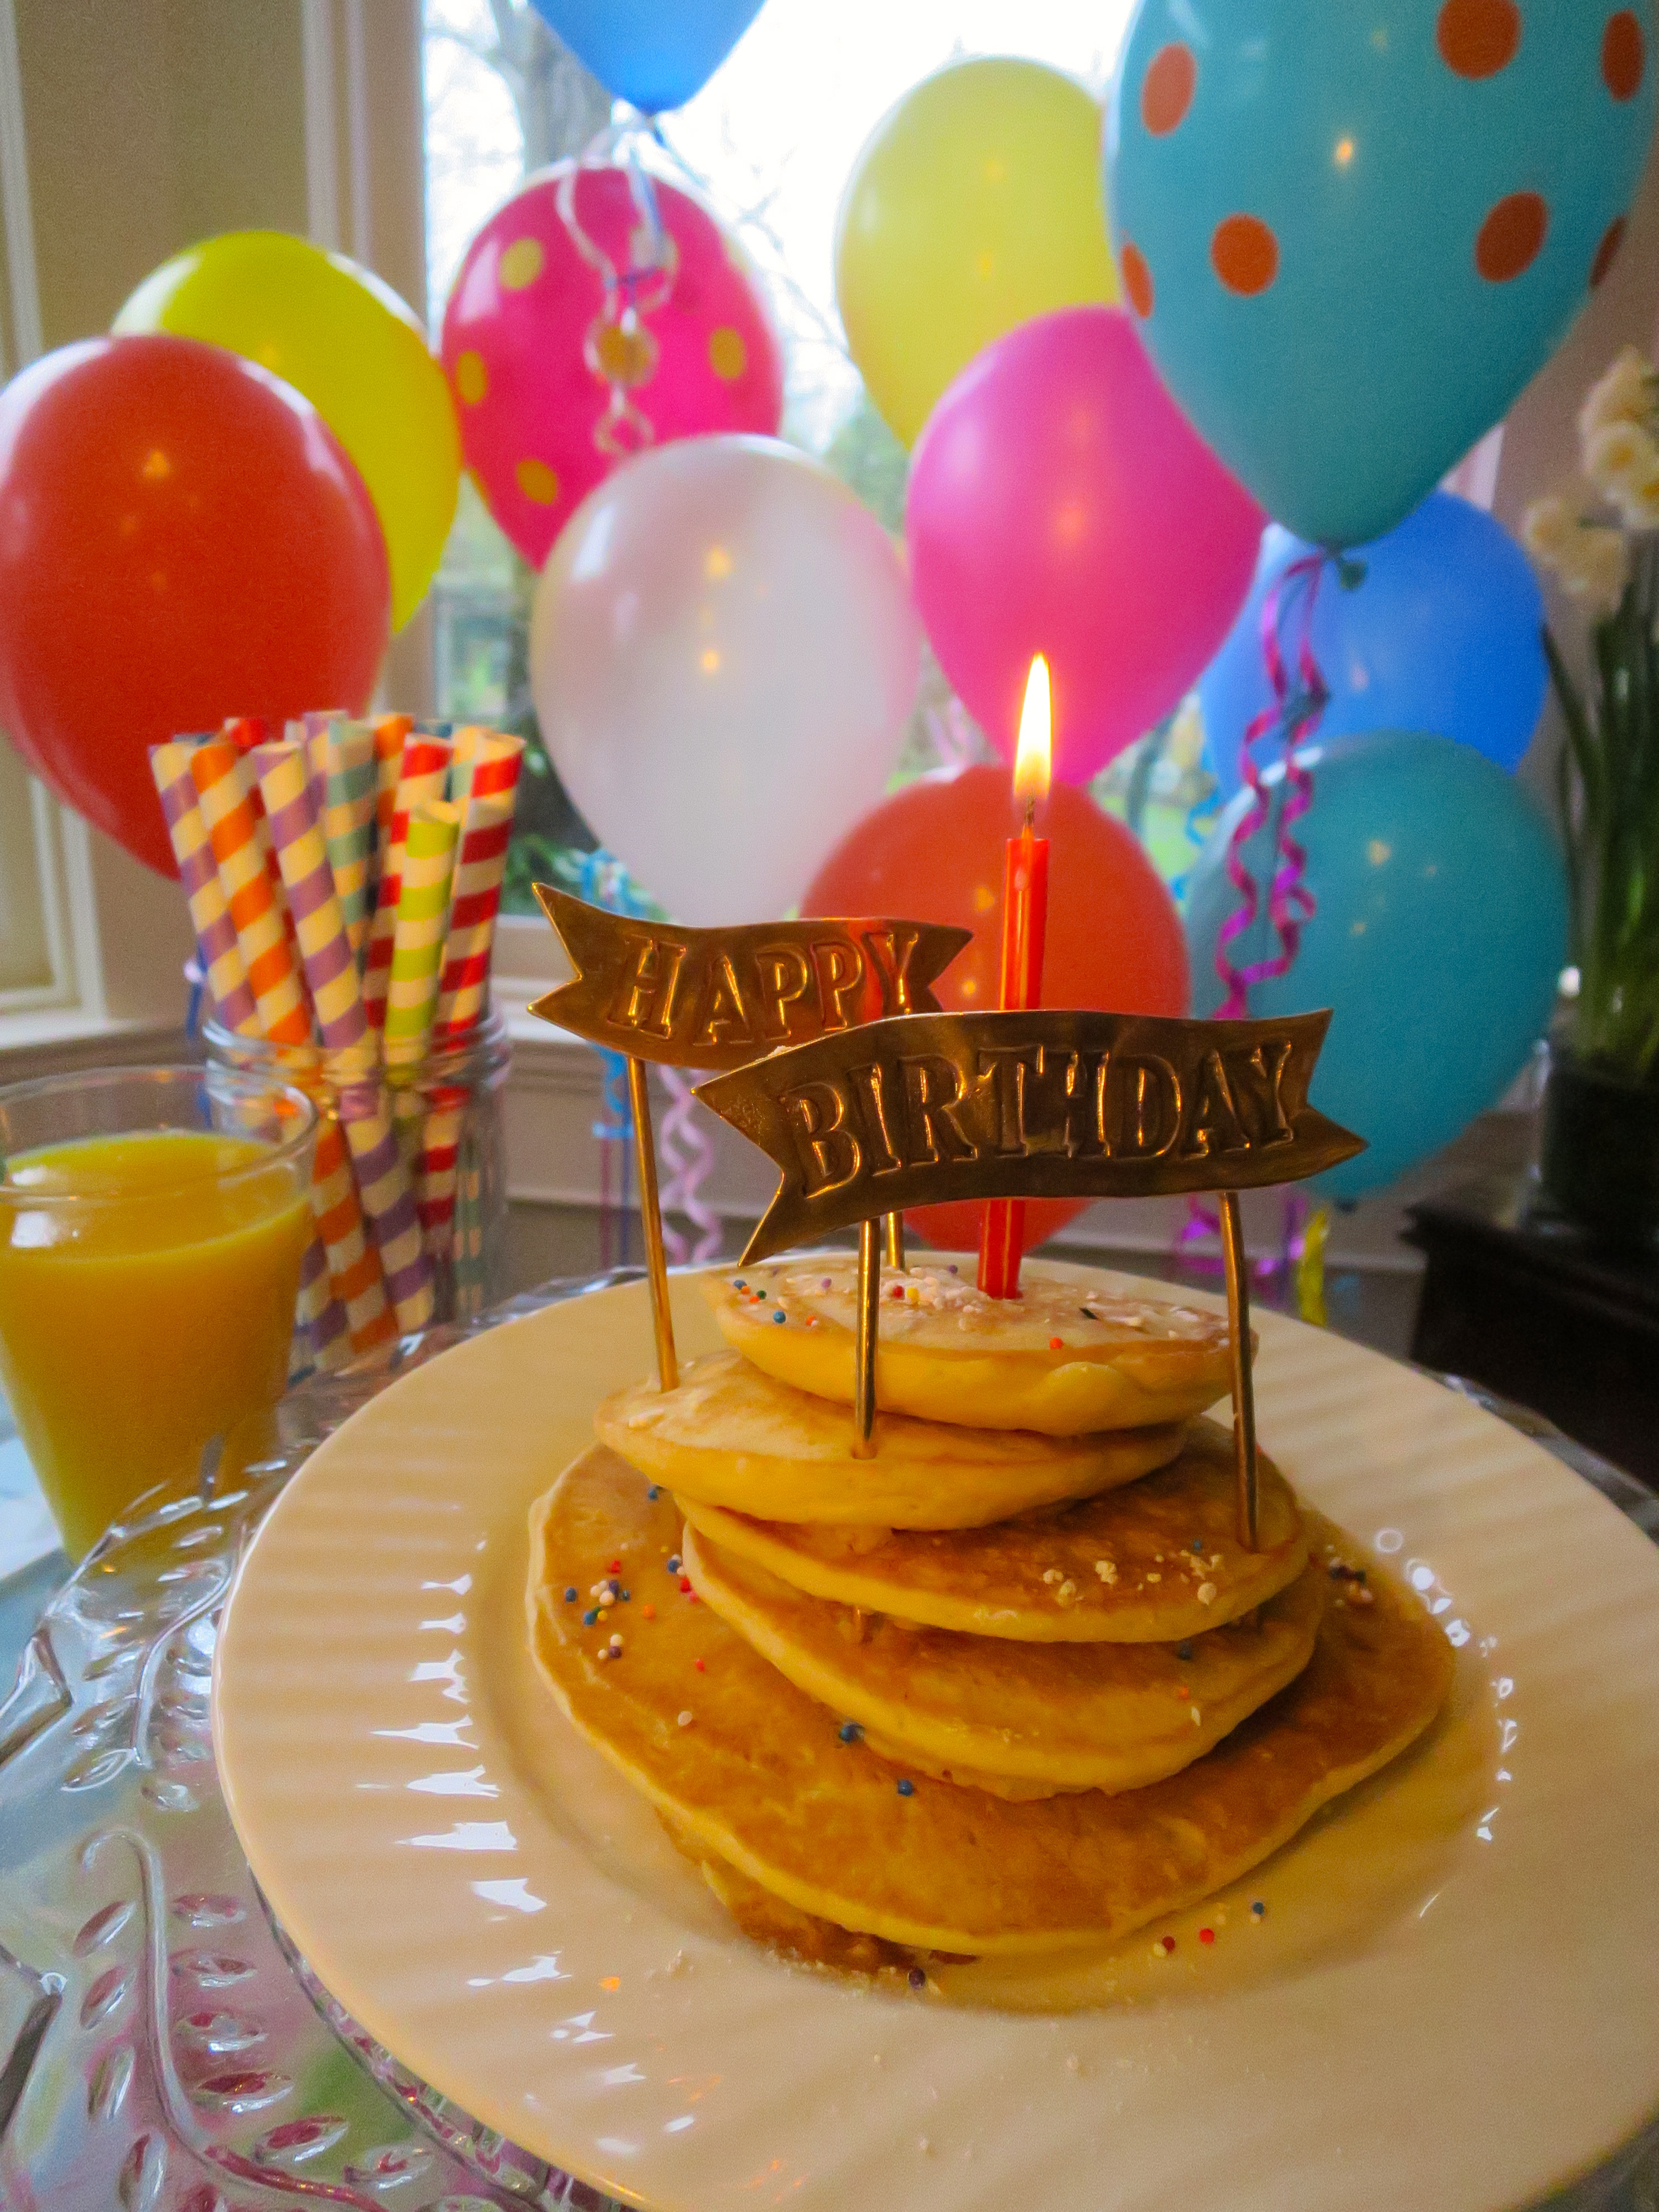 How to Sign HAPPY BIRTHDAY | Growing Signs